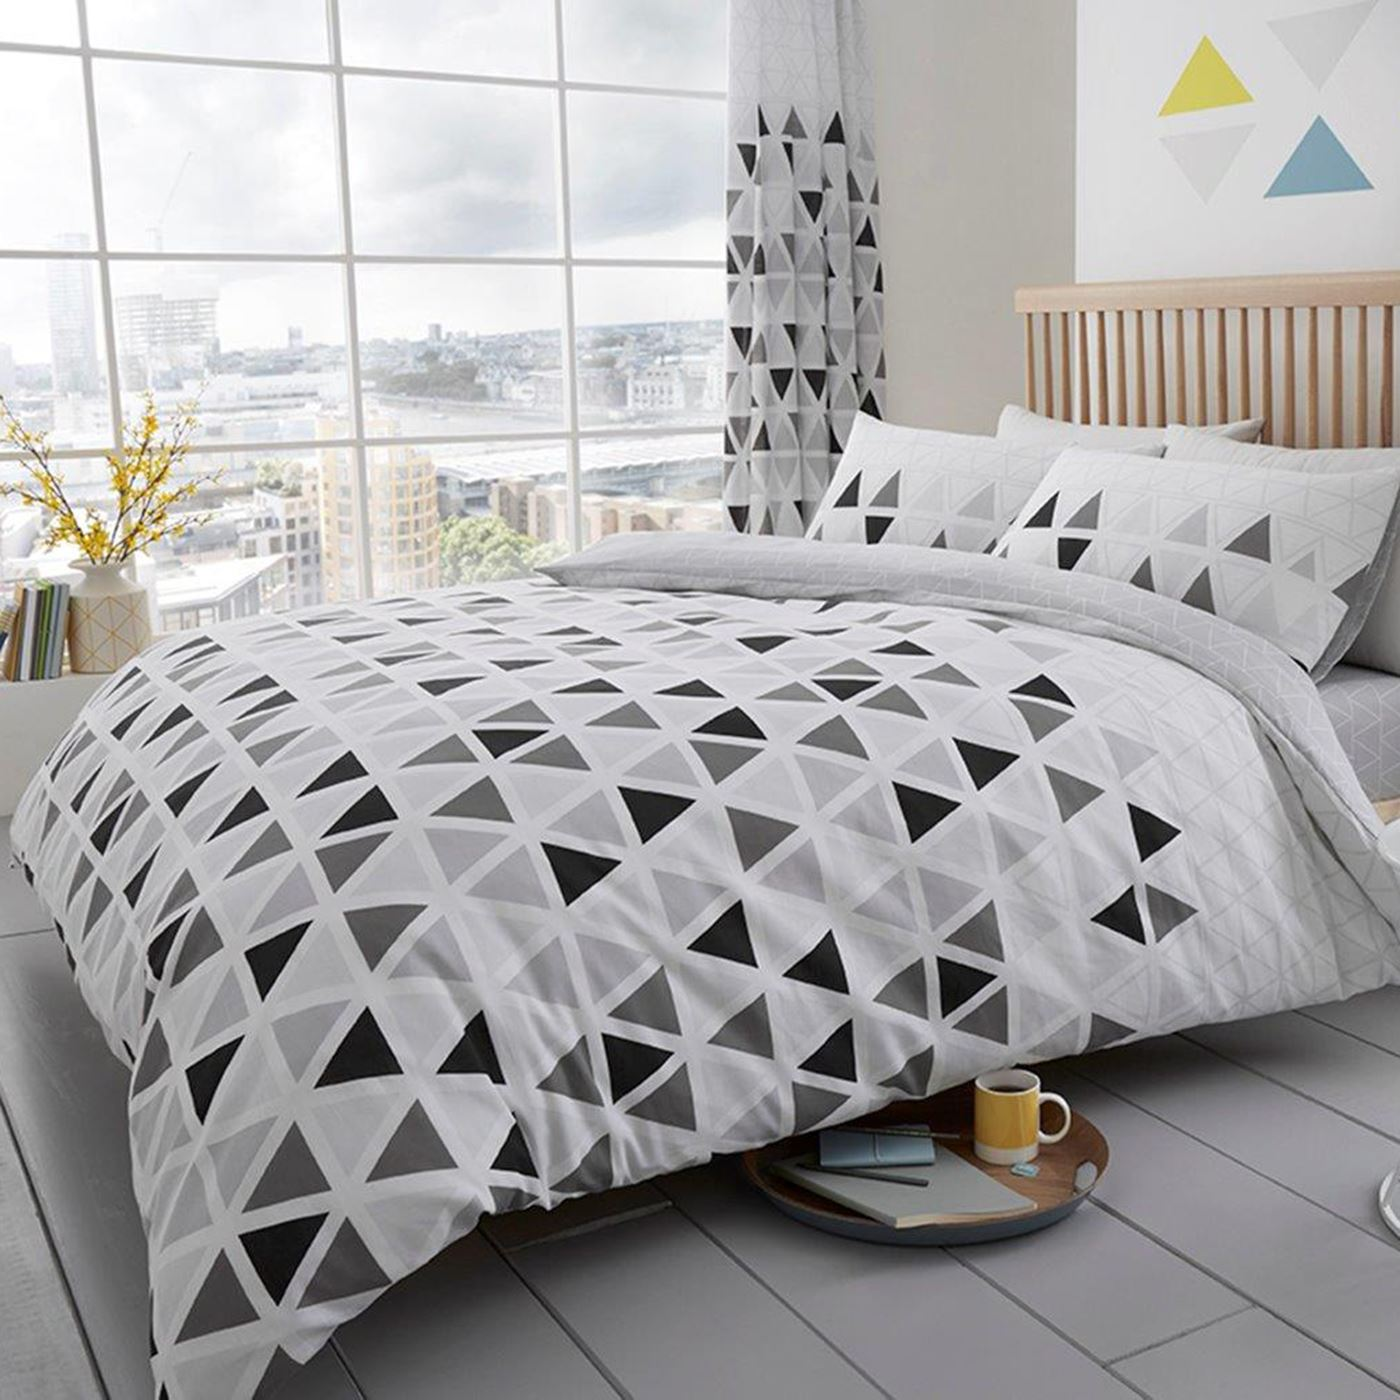 GEO TRIANGLE DUVET COVER SET BEDDING TEAL PINK GREY SINGLE DOUBLE